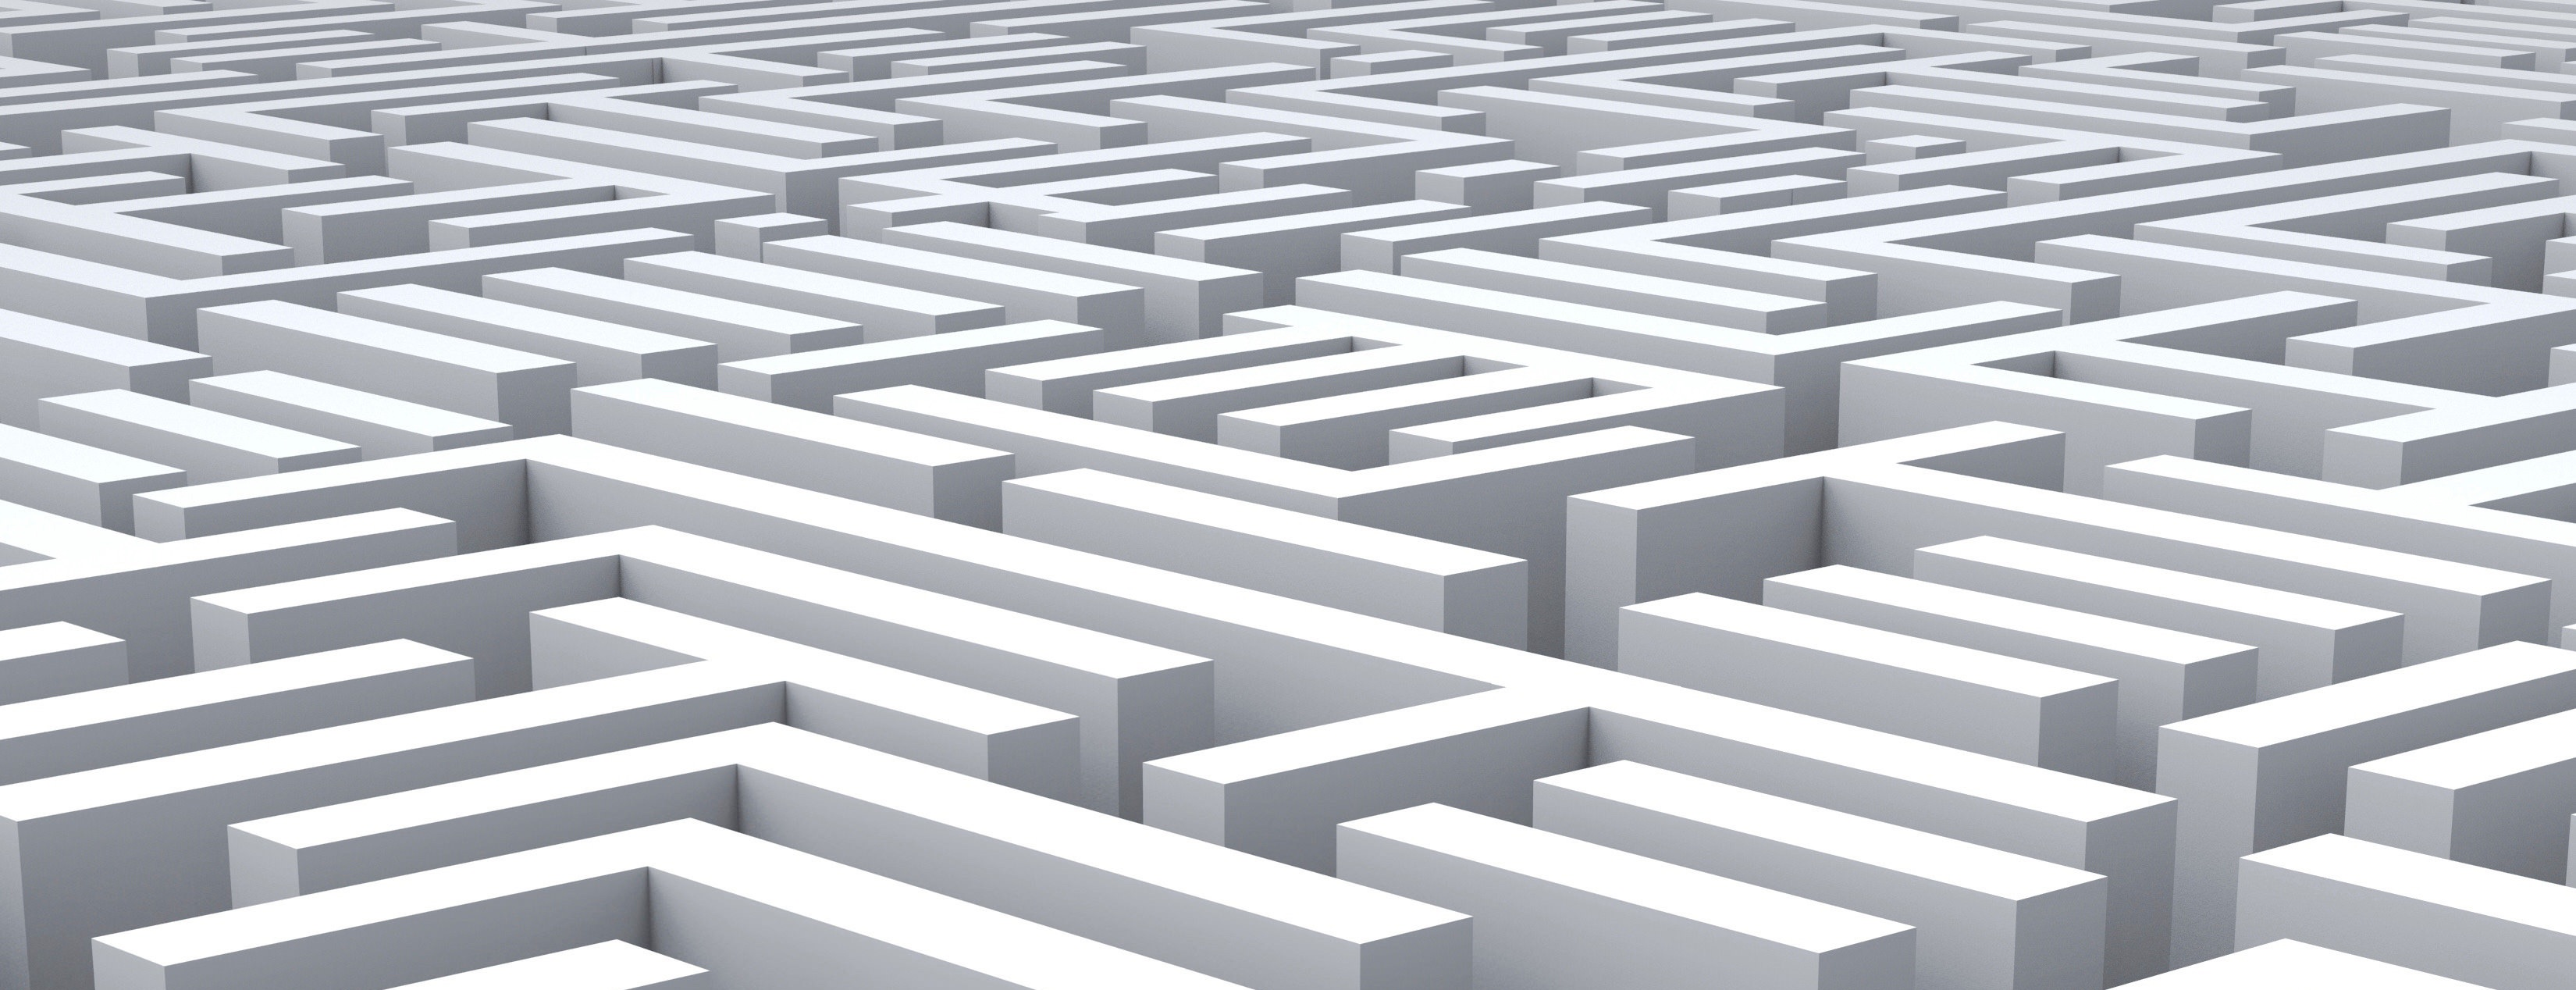 Lost in the Legal Maze